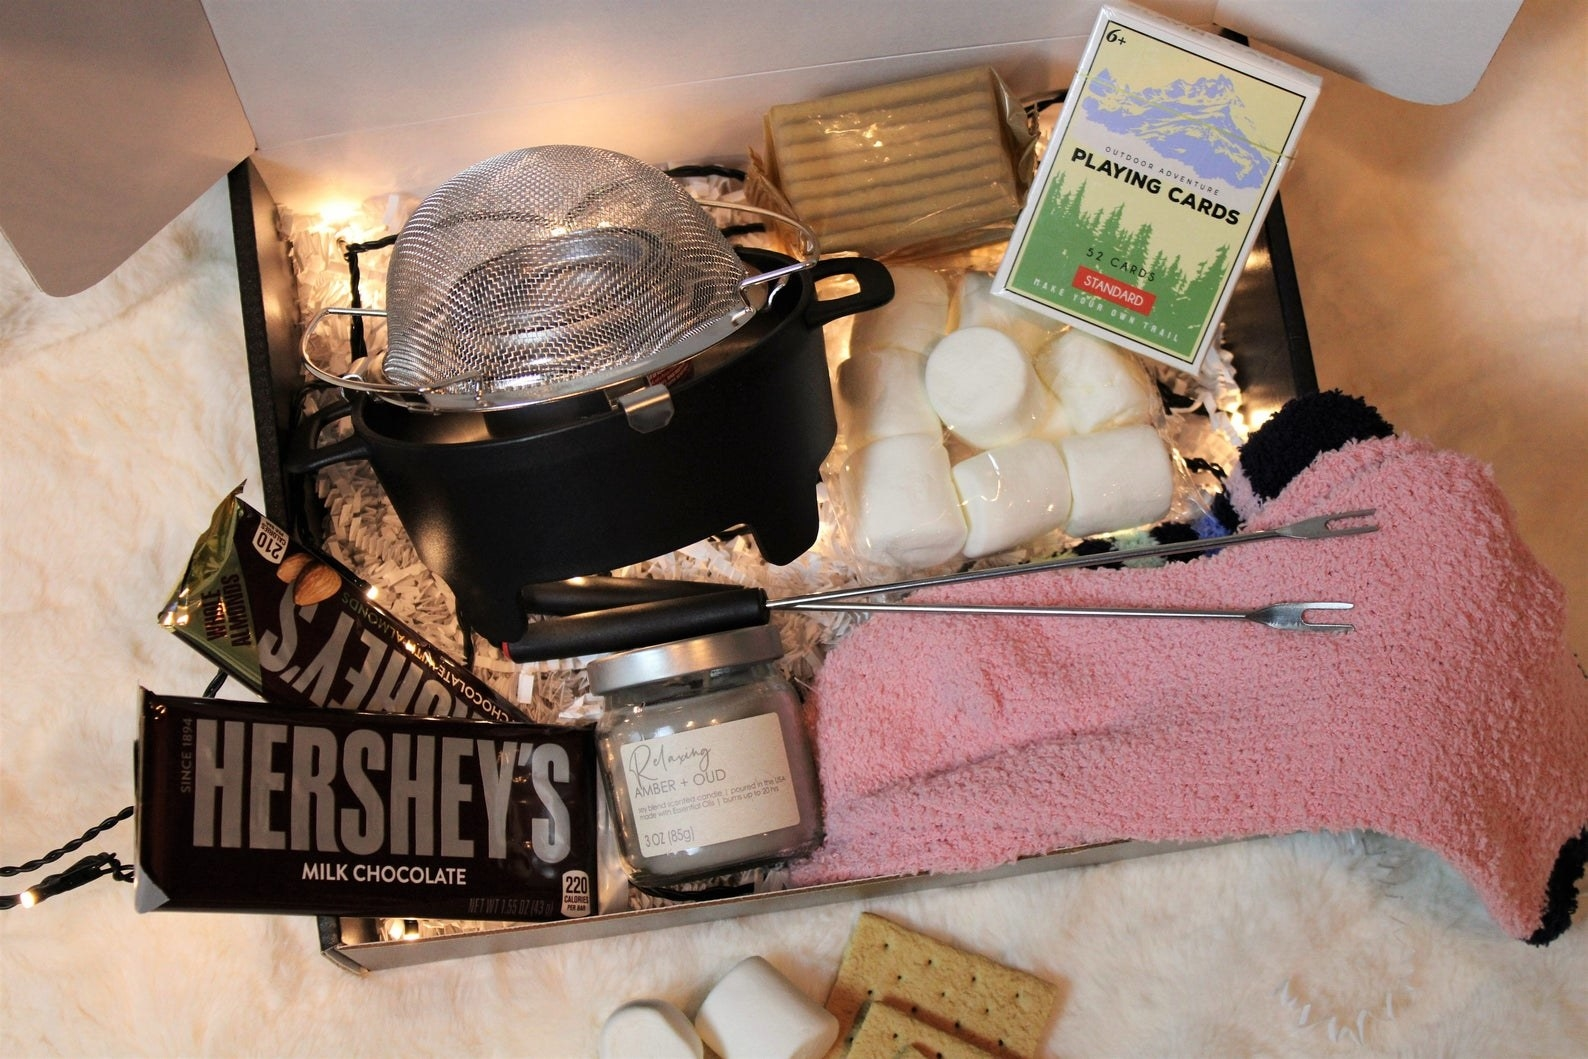 S'mores kit opened to reveal contents